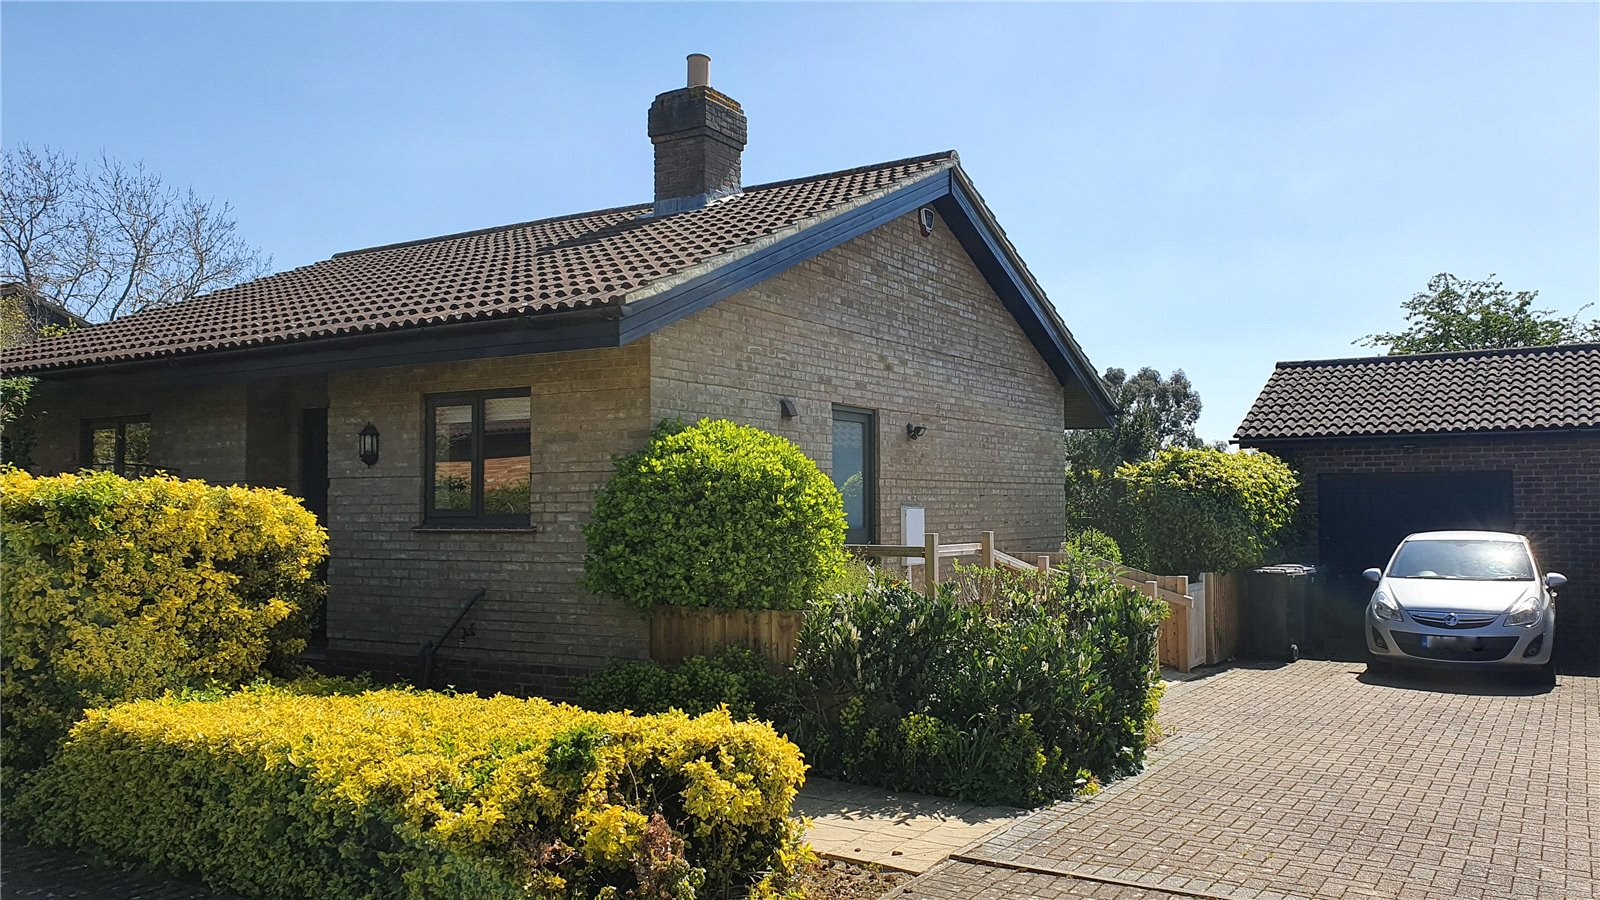 2 bed bungalow for sale in Little Gransden, SG19